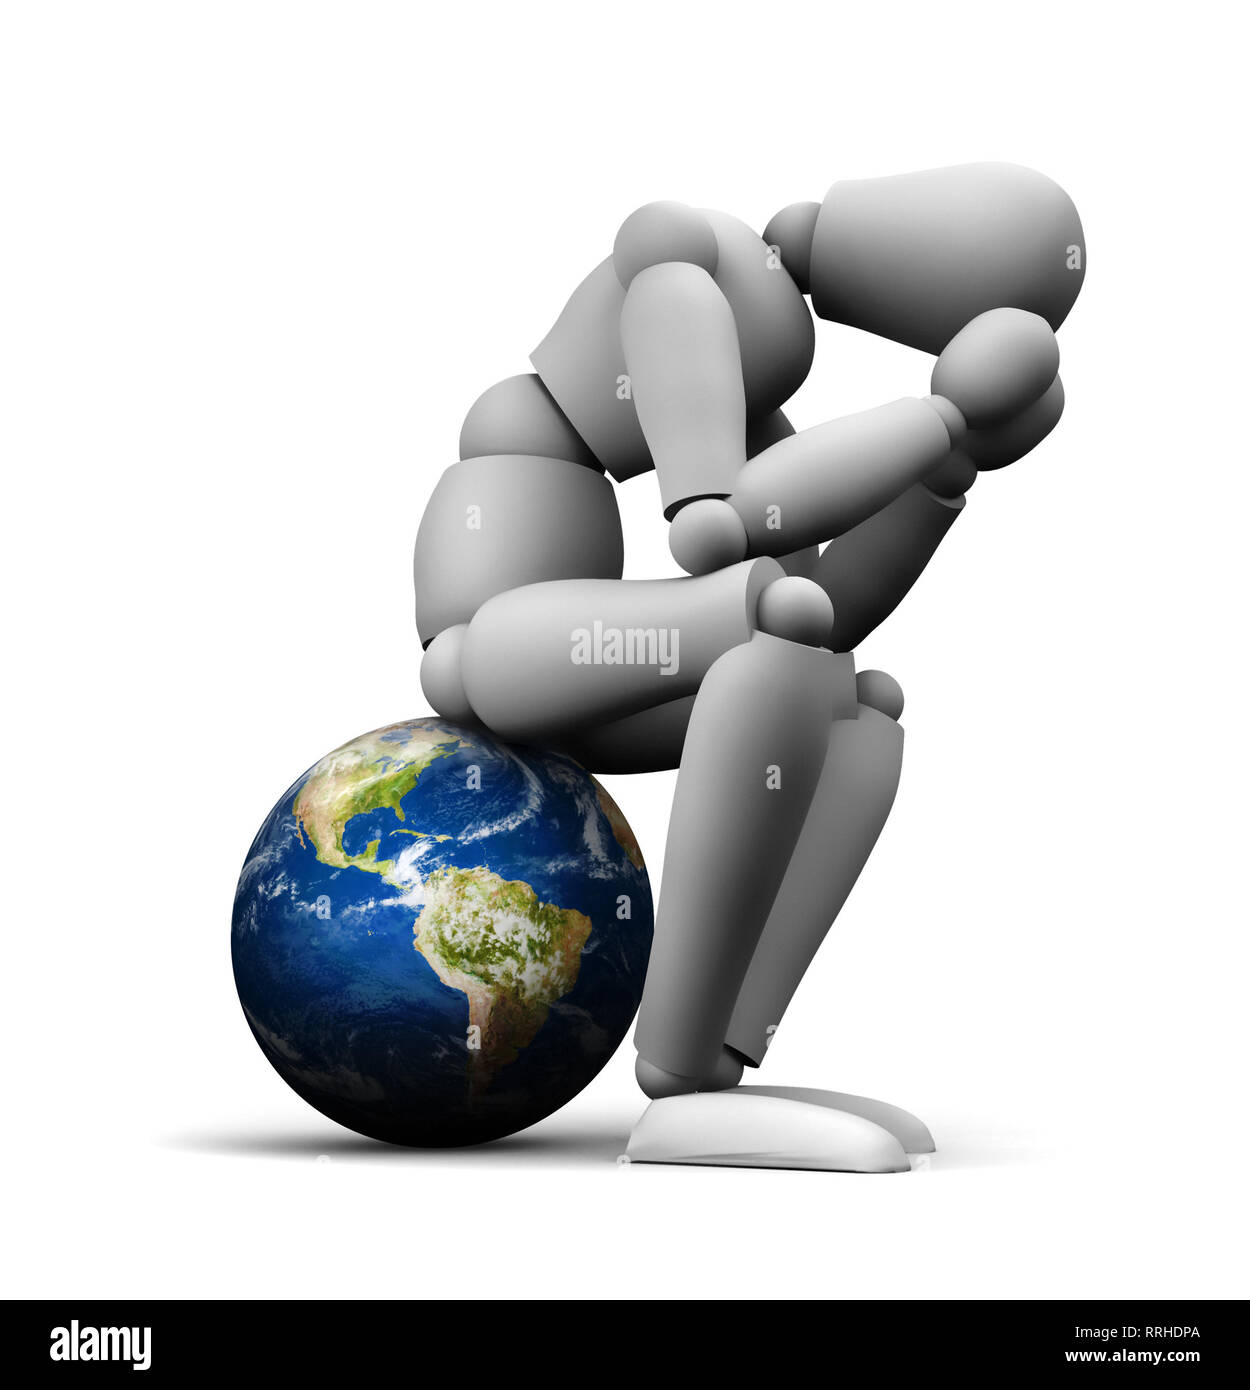 3D illustration of person sitting on Earth globe holding head in hands. - Stock Image